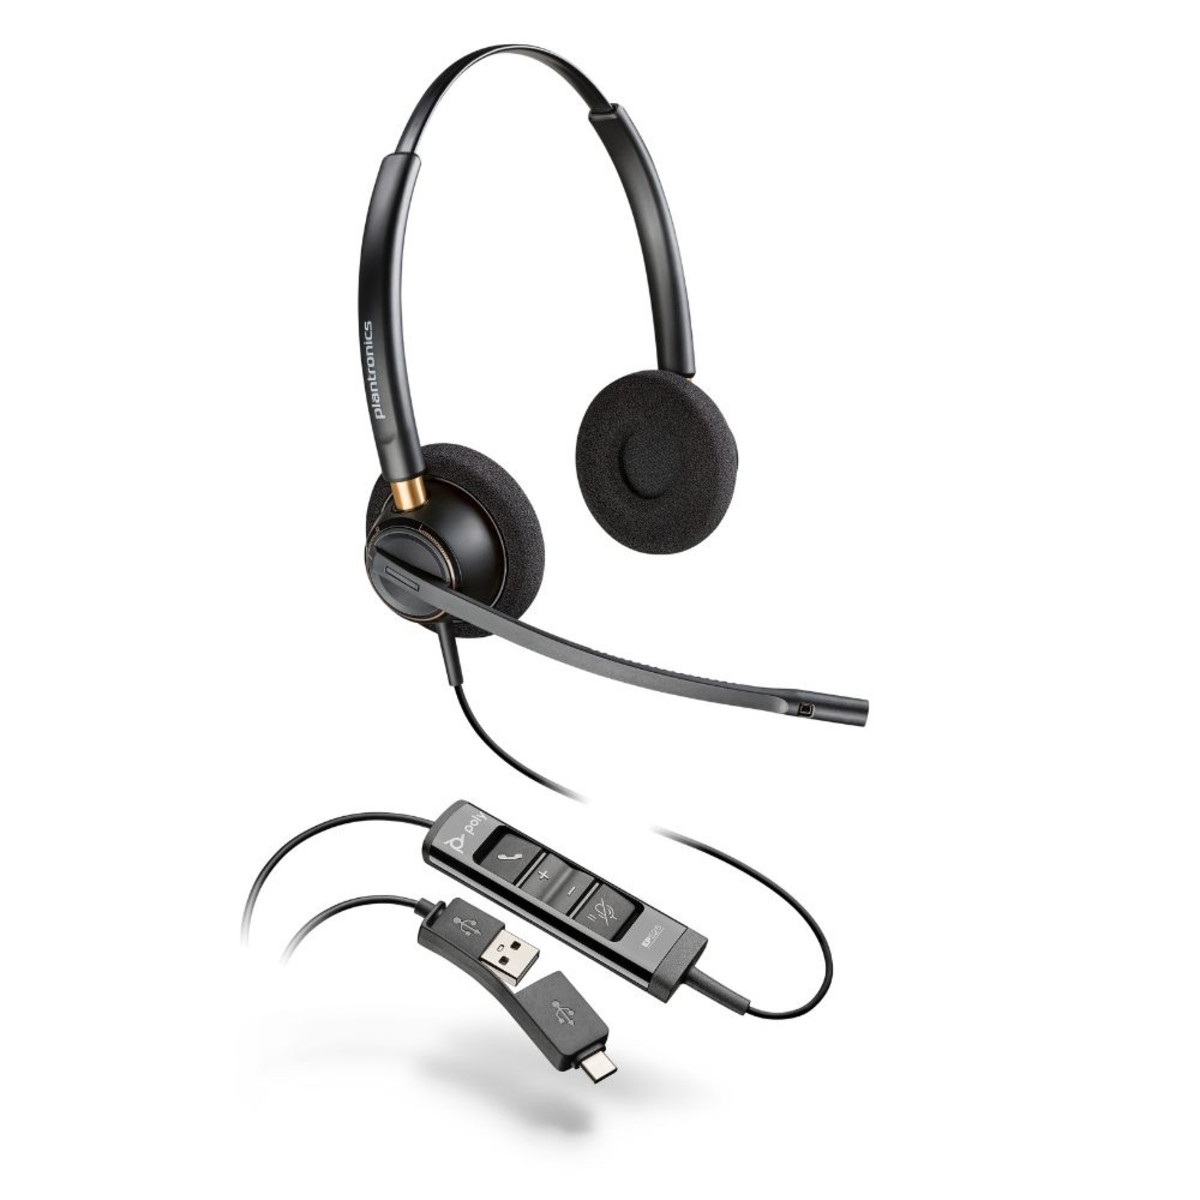 Poly EncorePro EP525 USB-A, USB-C stereoheadset